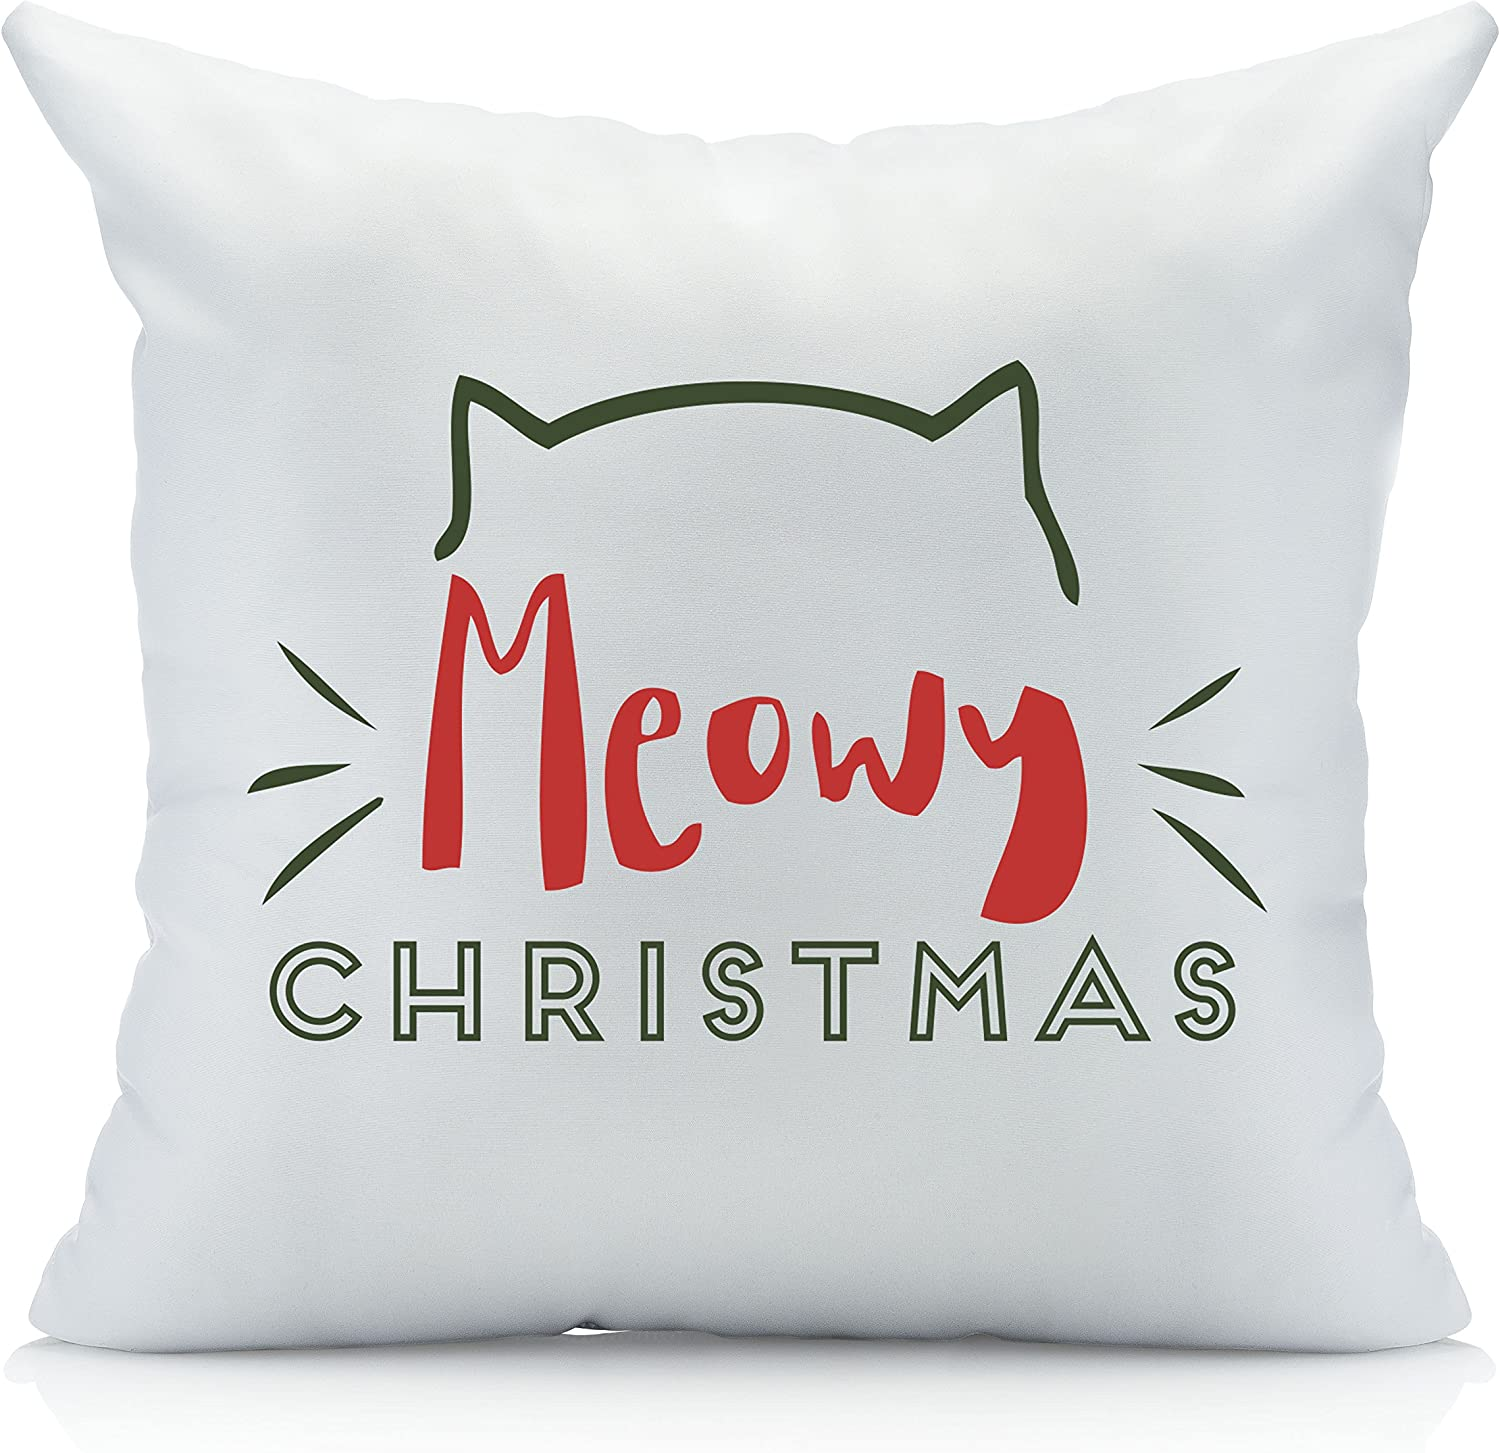 Oh 1 18 by 18 Inches Susannah Meowy Christmas Throw Pillow Cover Multicolor